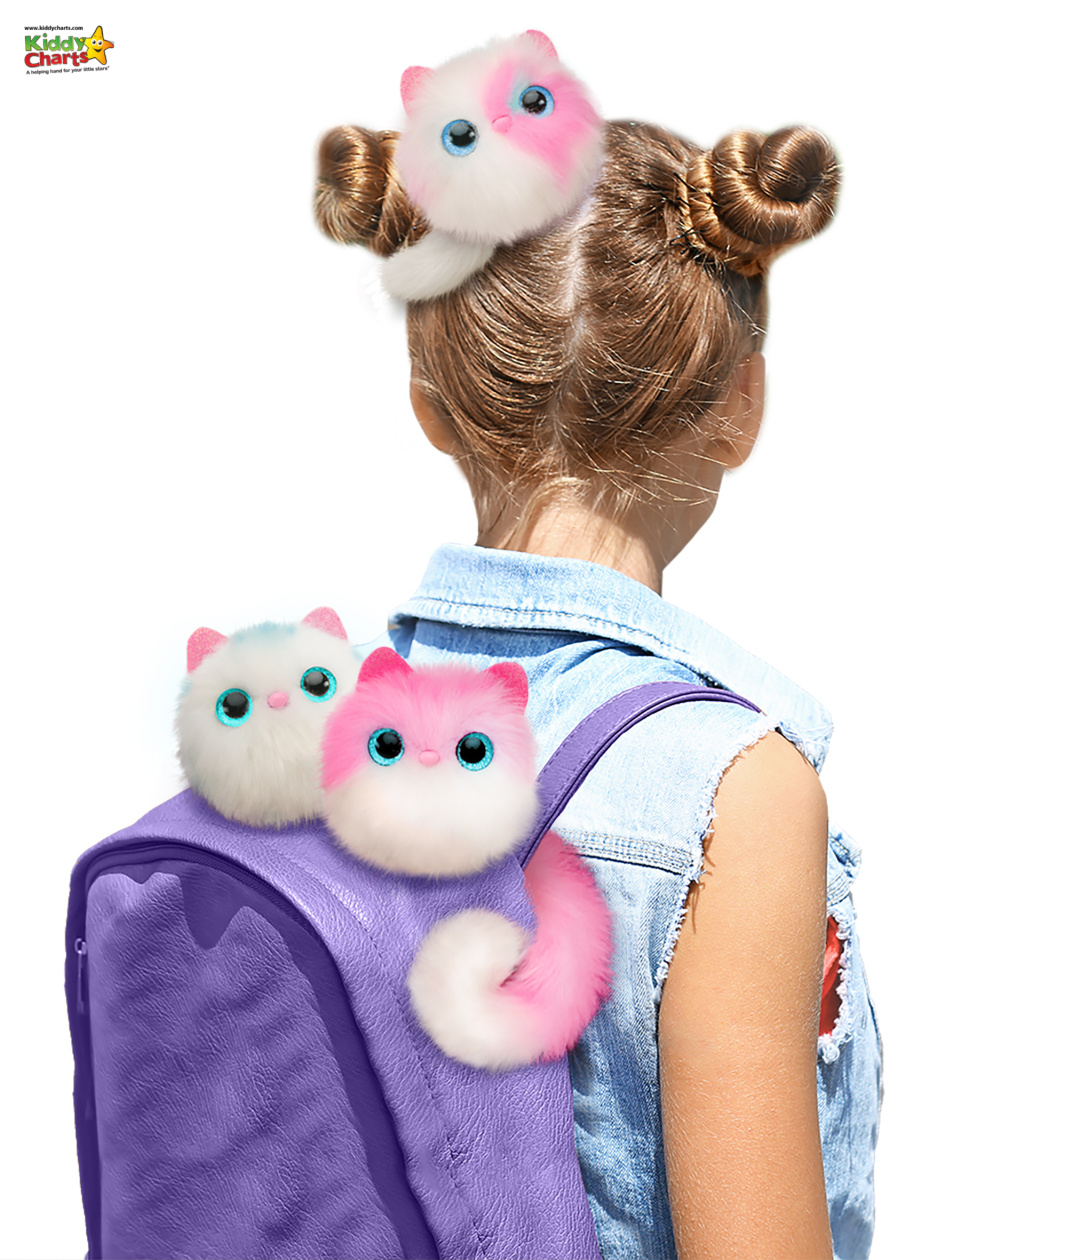 Girl with Pomsie Poos on her backpack and in her hair.